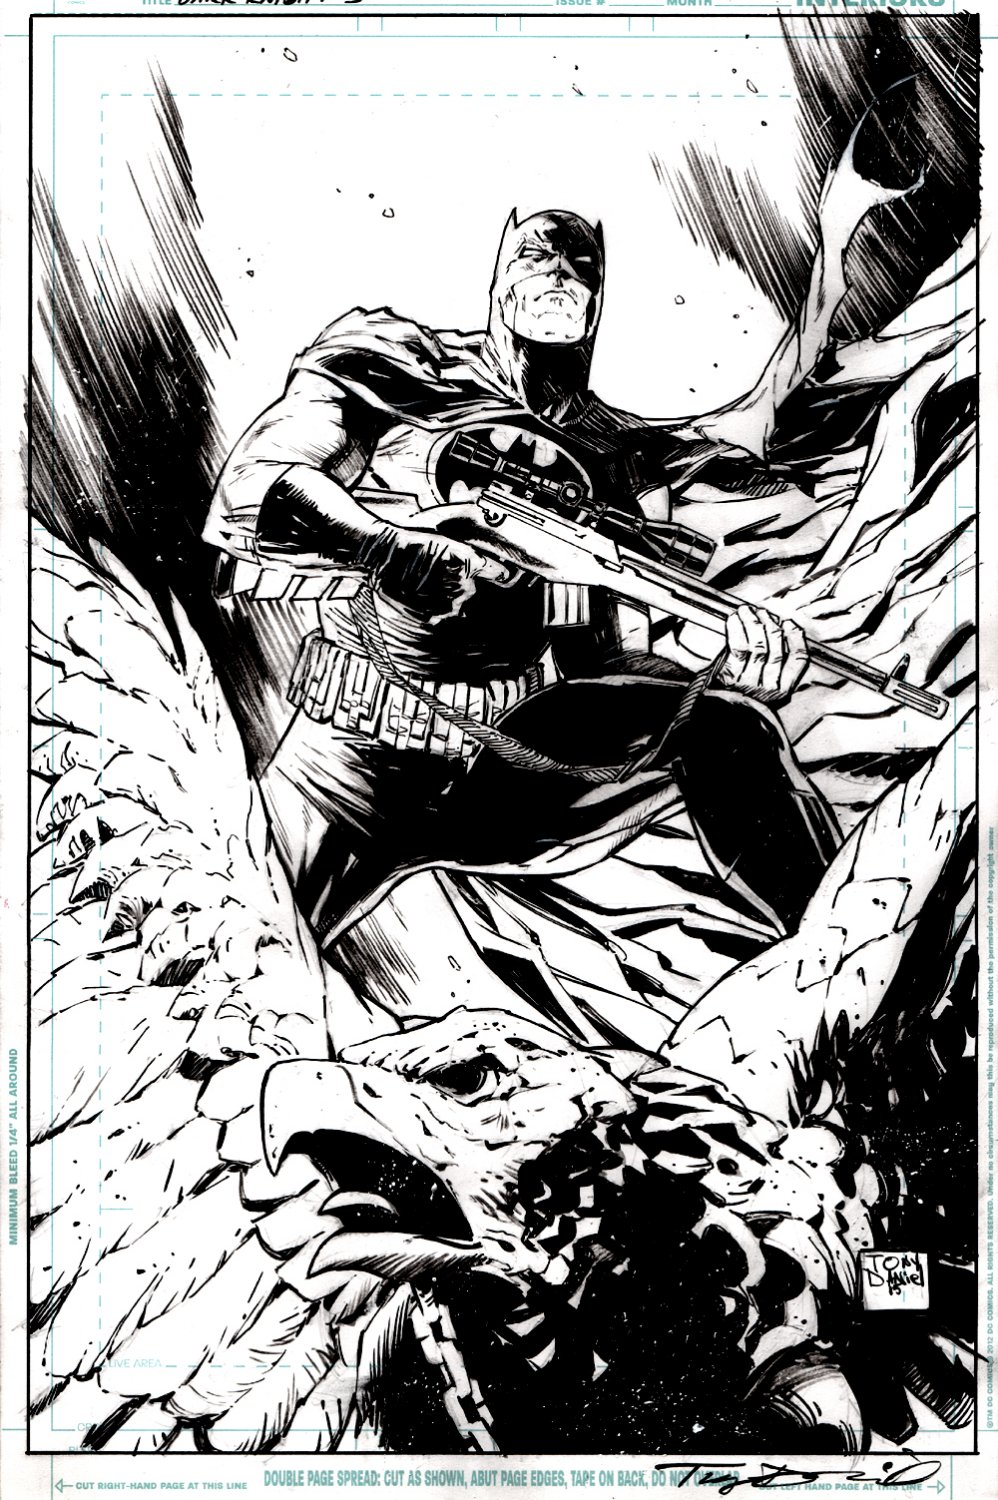 Dark Knight III: The Master Race #1 Cover (FIRST ISSUE, USED FOR 2 COVERS!) 2015)